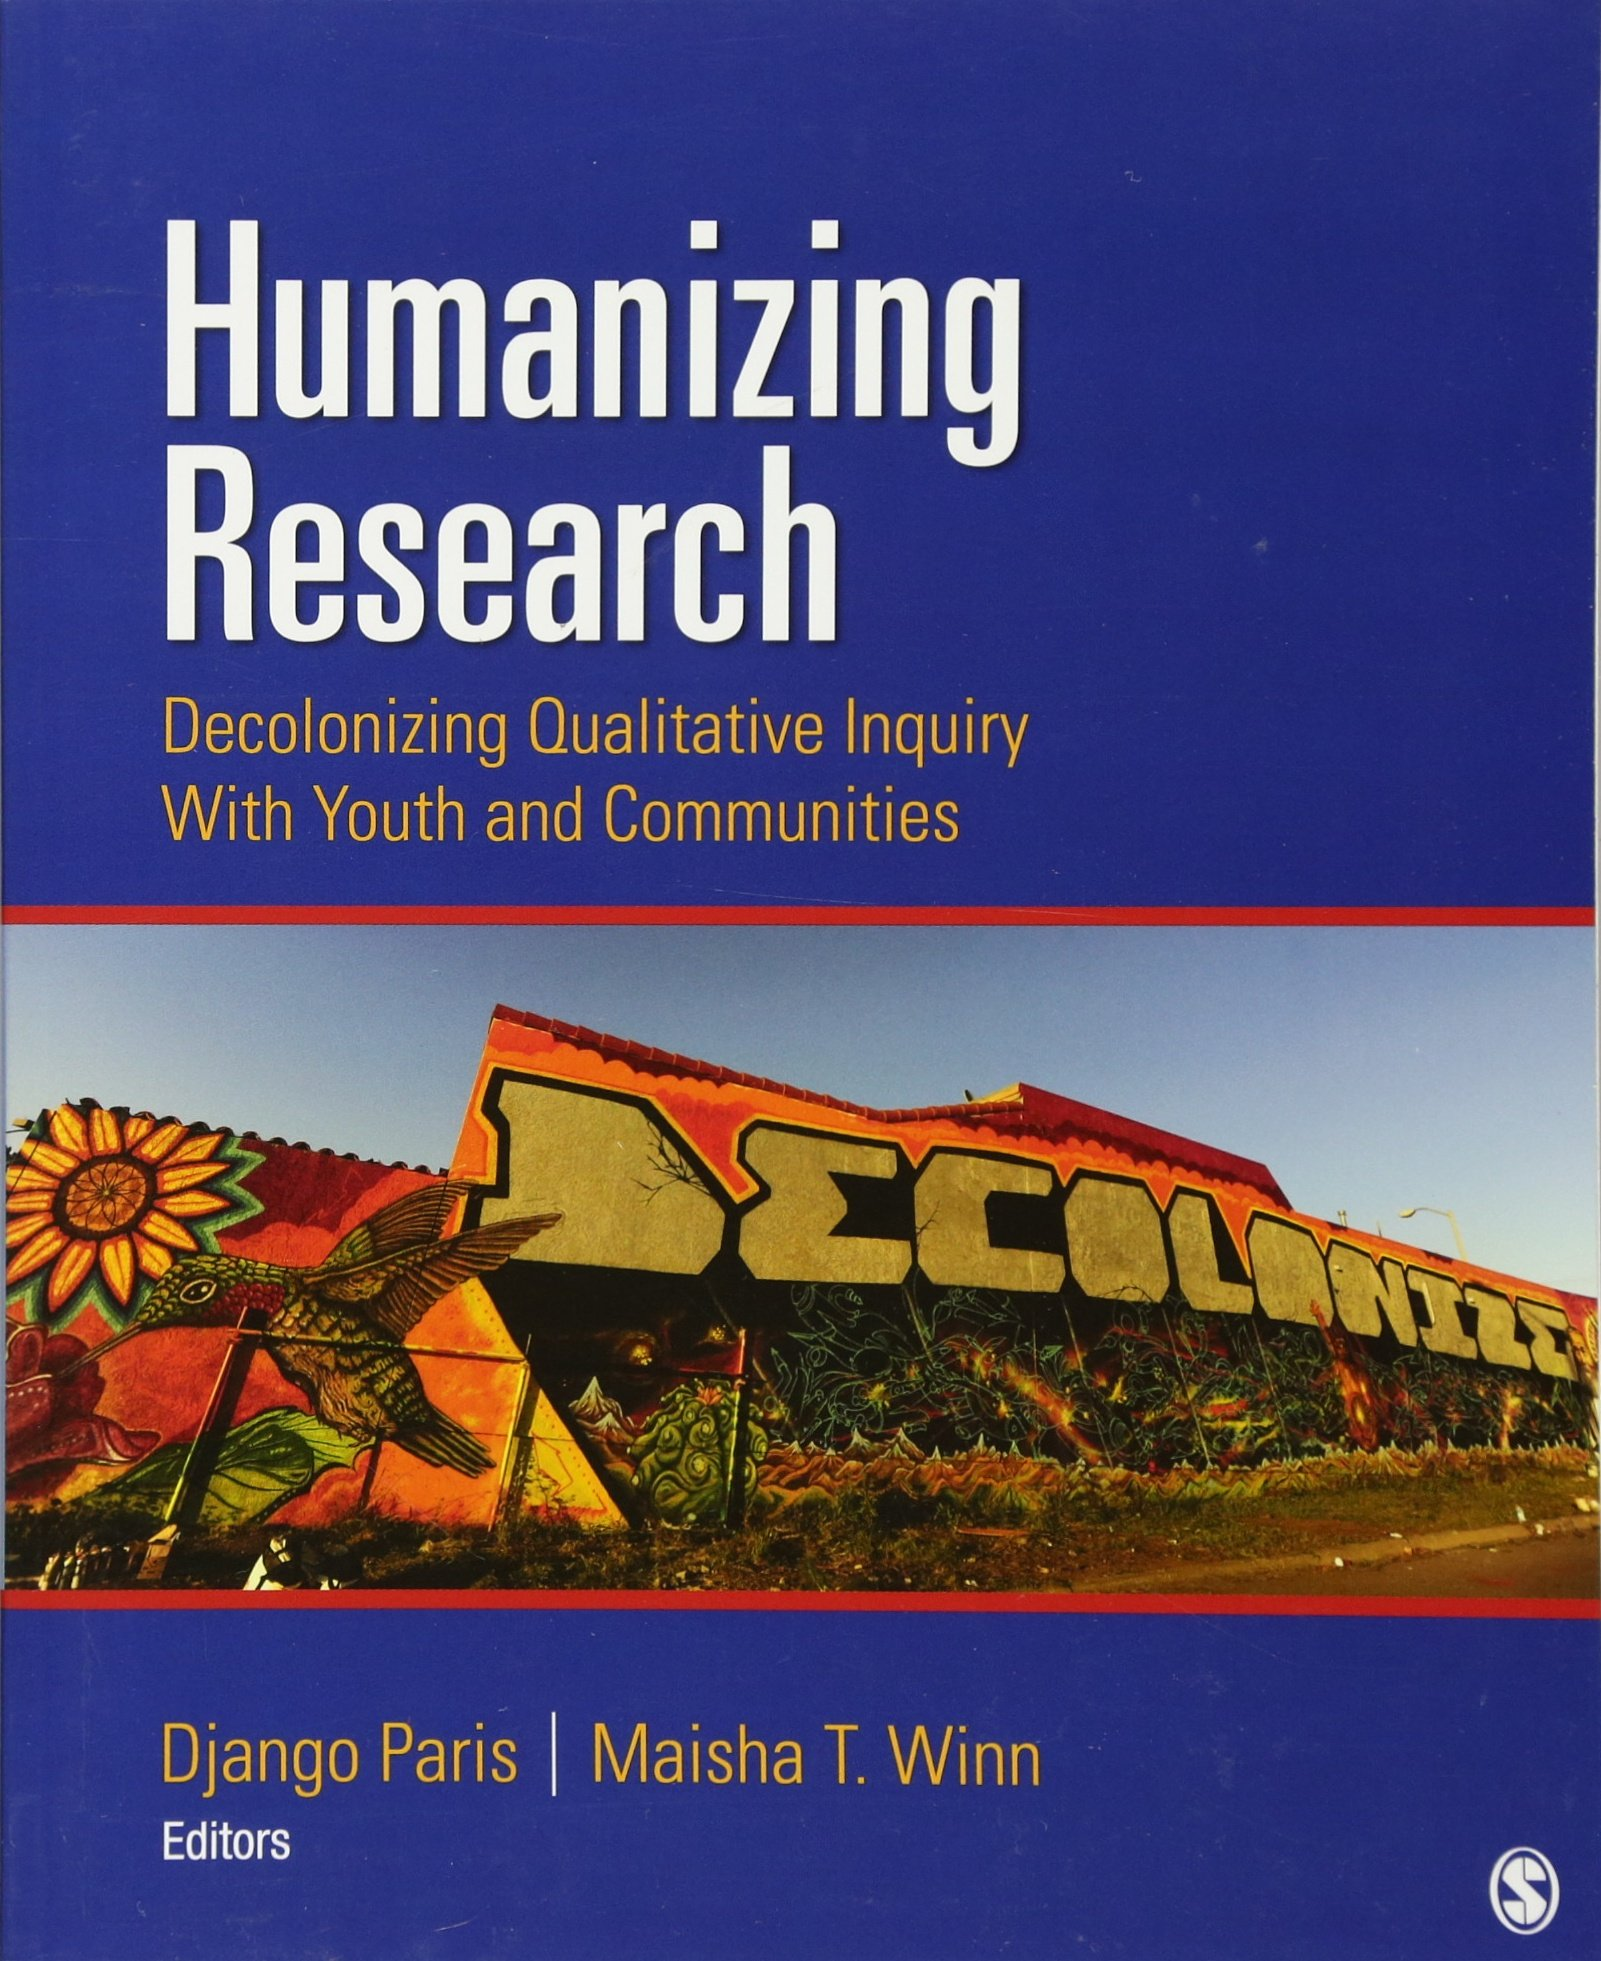 Humanizing Research: Decolonizing Qualitative Inquiry With Youth and Communities